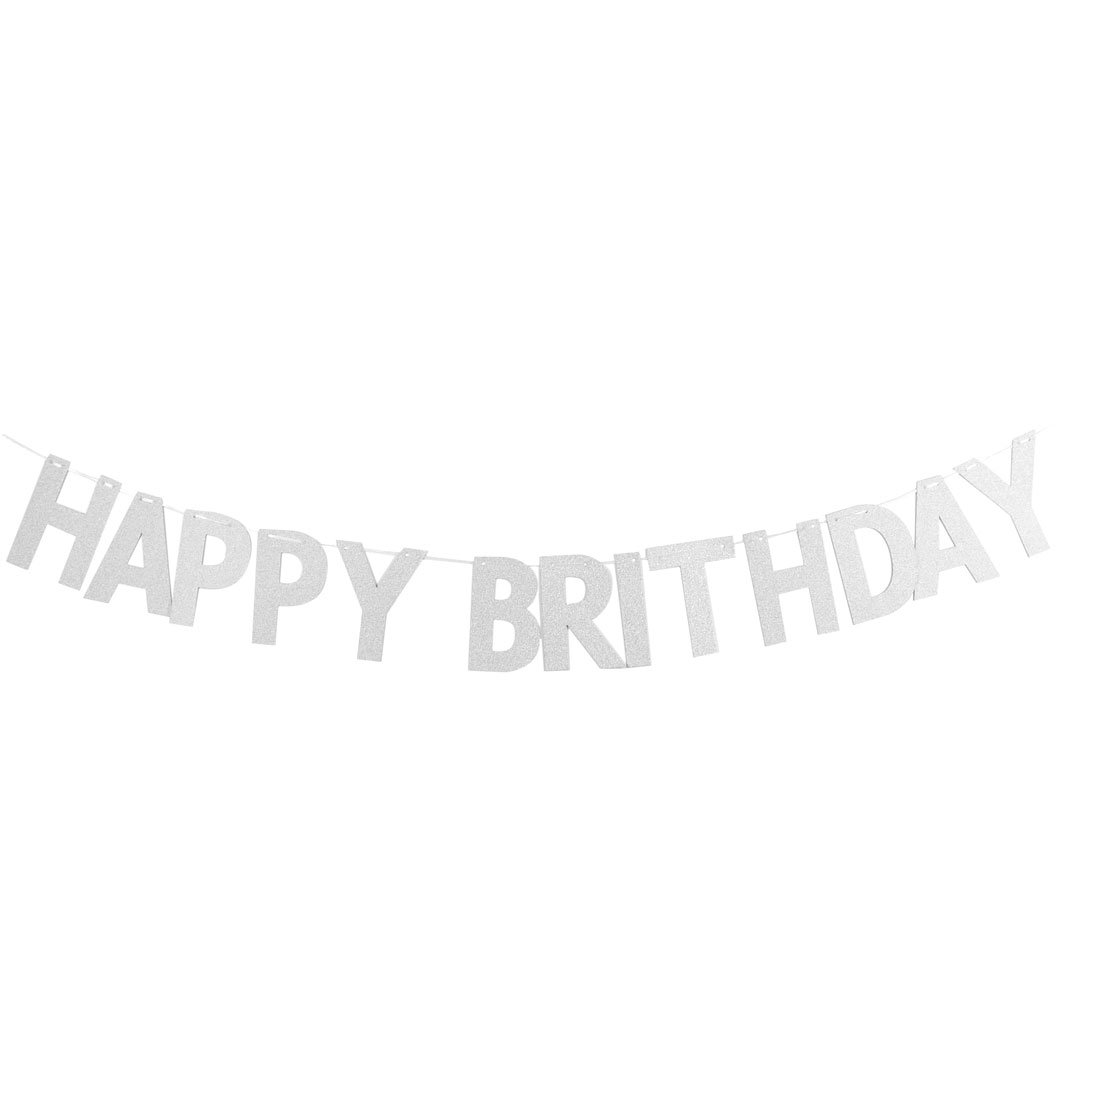 Paper HAPPY BIRTHDAY Letters Decor Photo Prop Bunting Banner Silver Tone Set